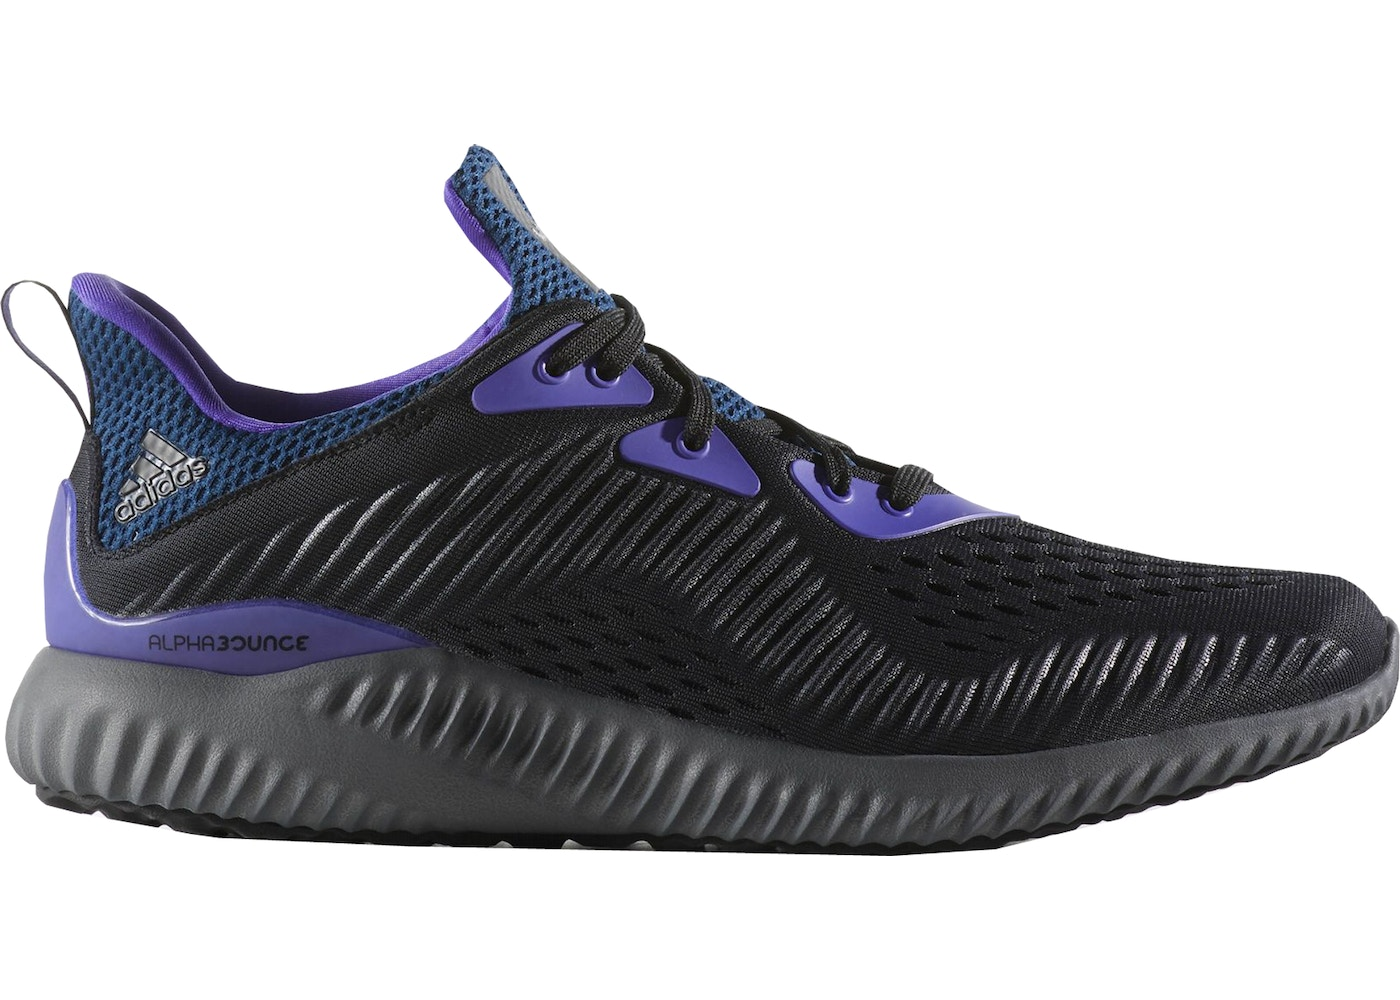 26cd92c766e29 ... website full of sneakers half off adidas Alphabounce 1 Kolor Black   footwear adidas x ...